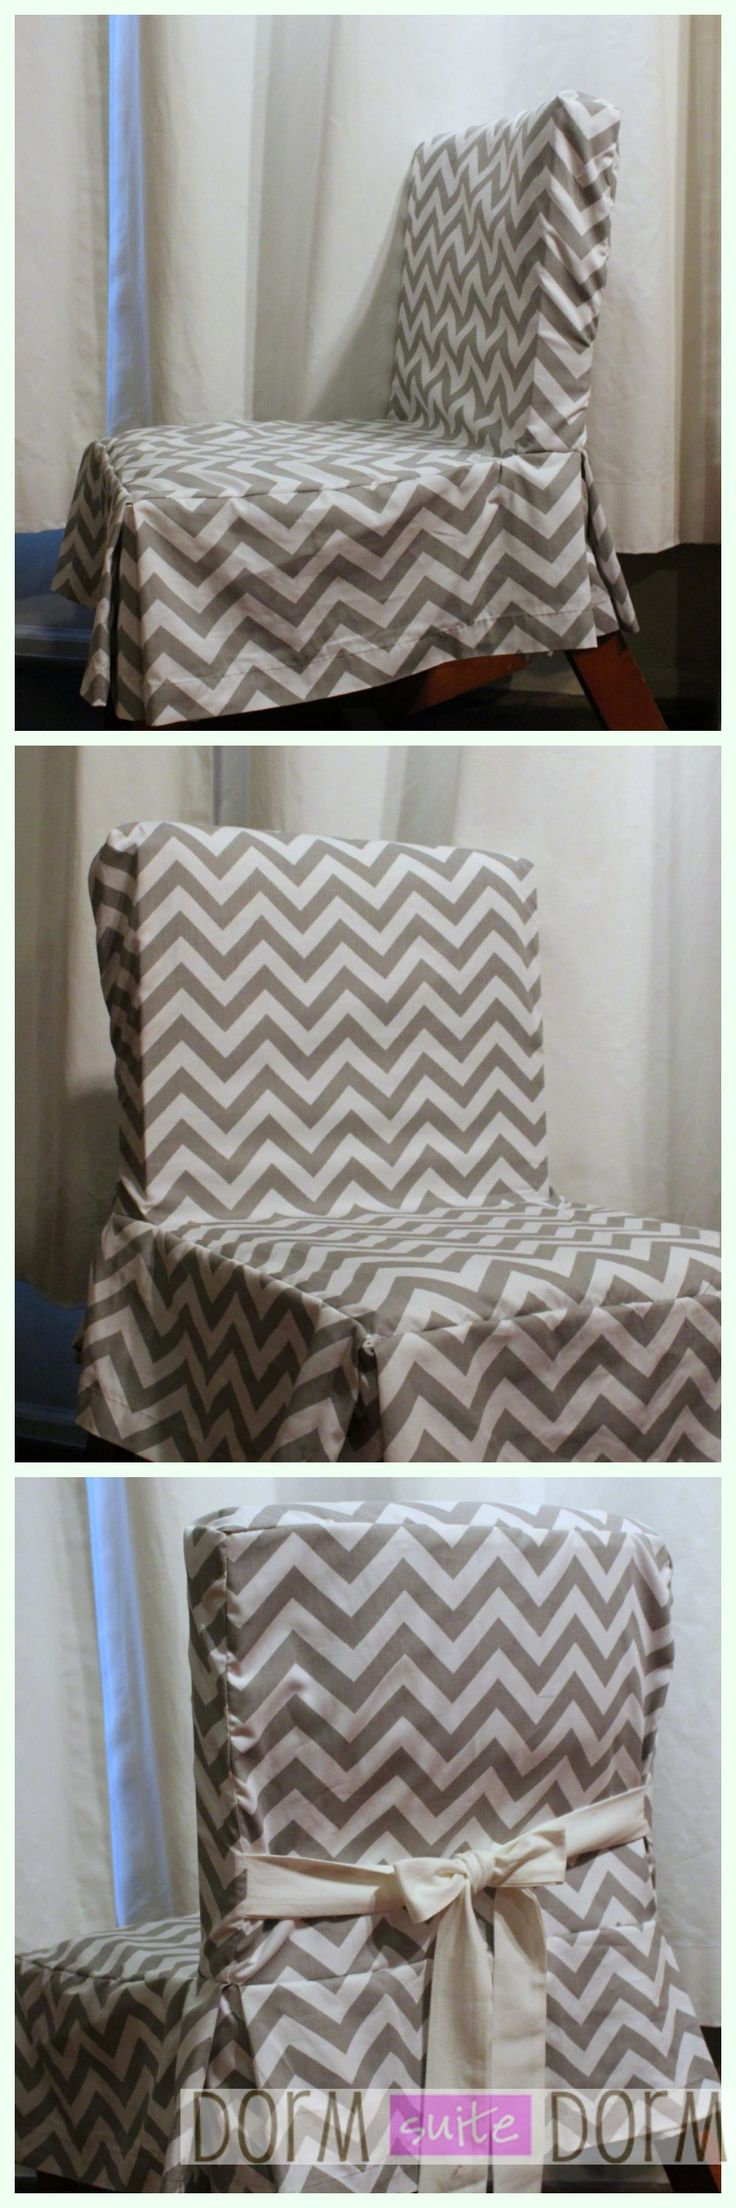 ~~REPIN~~ Cute dorm room chair cover #dorm #dormbedding